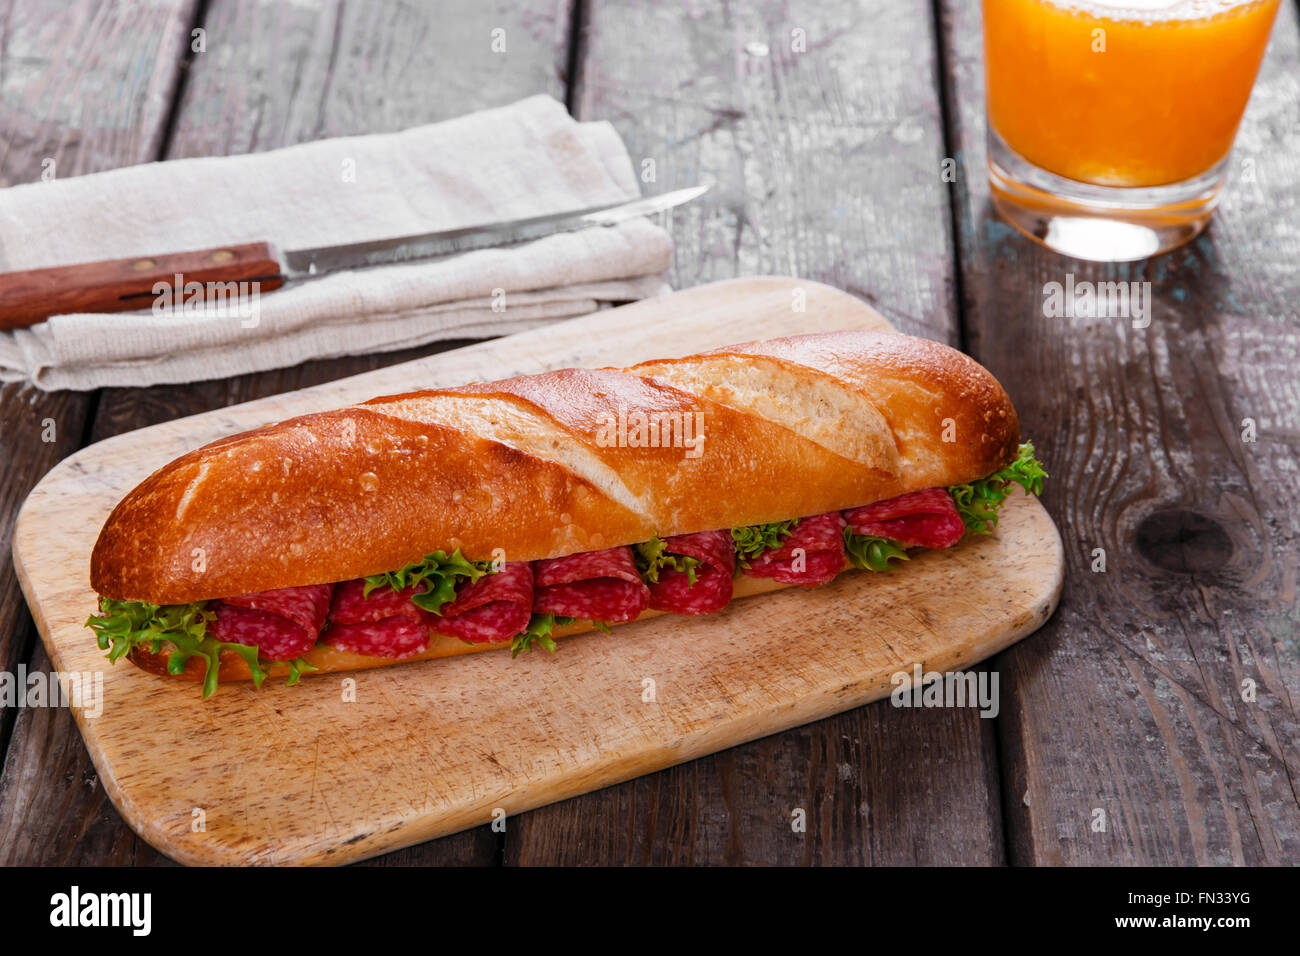 baguette sandwich with salami and herbs on a wooden surface Stock Photo